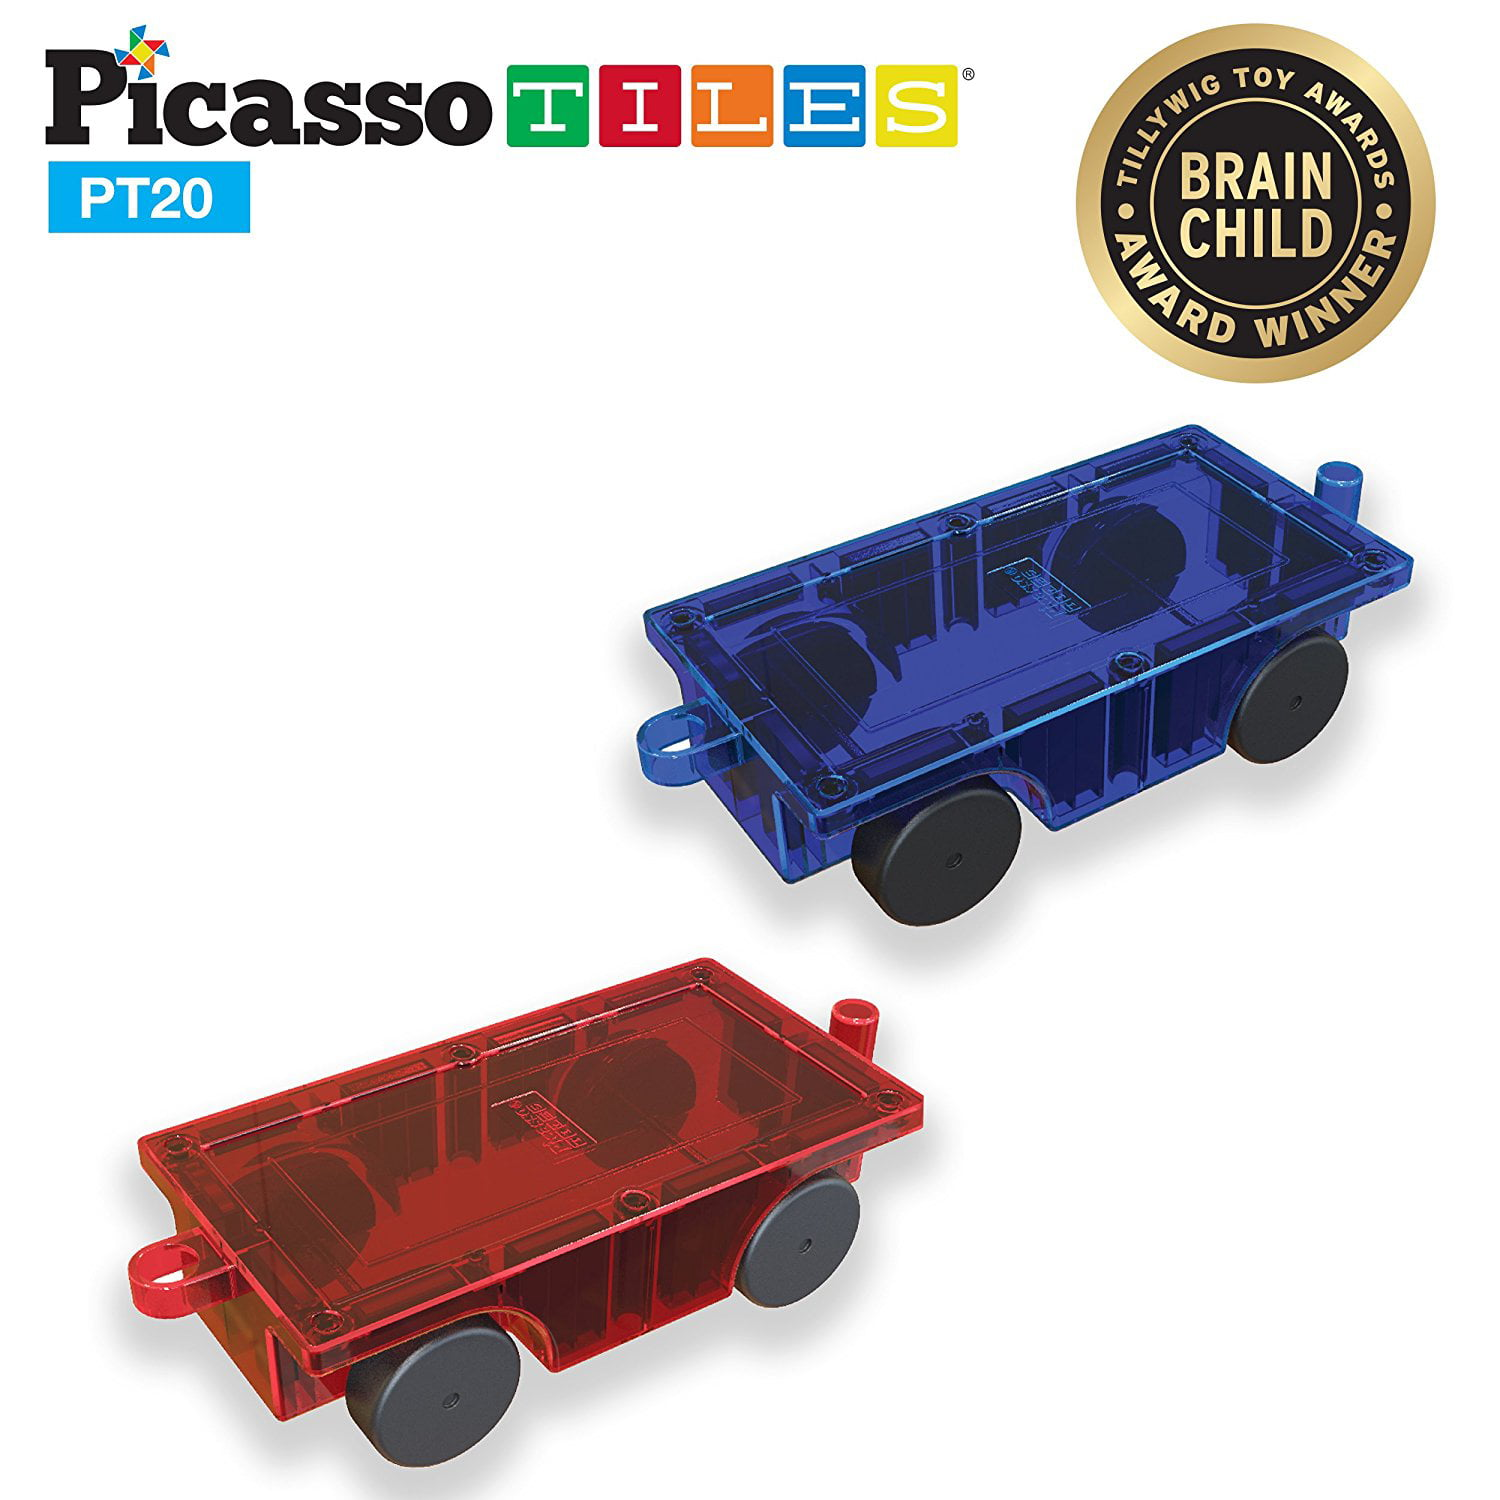 PicassoTiles 2 Piece Car Truck Set with Extra Long Bed & Re-Enforced Latch Magnet Building... by PicassoTiles